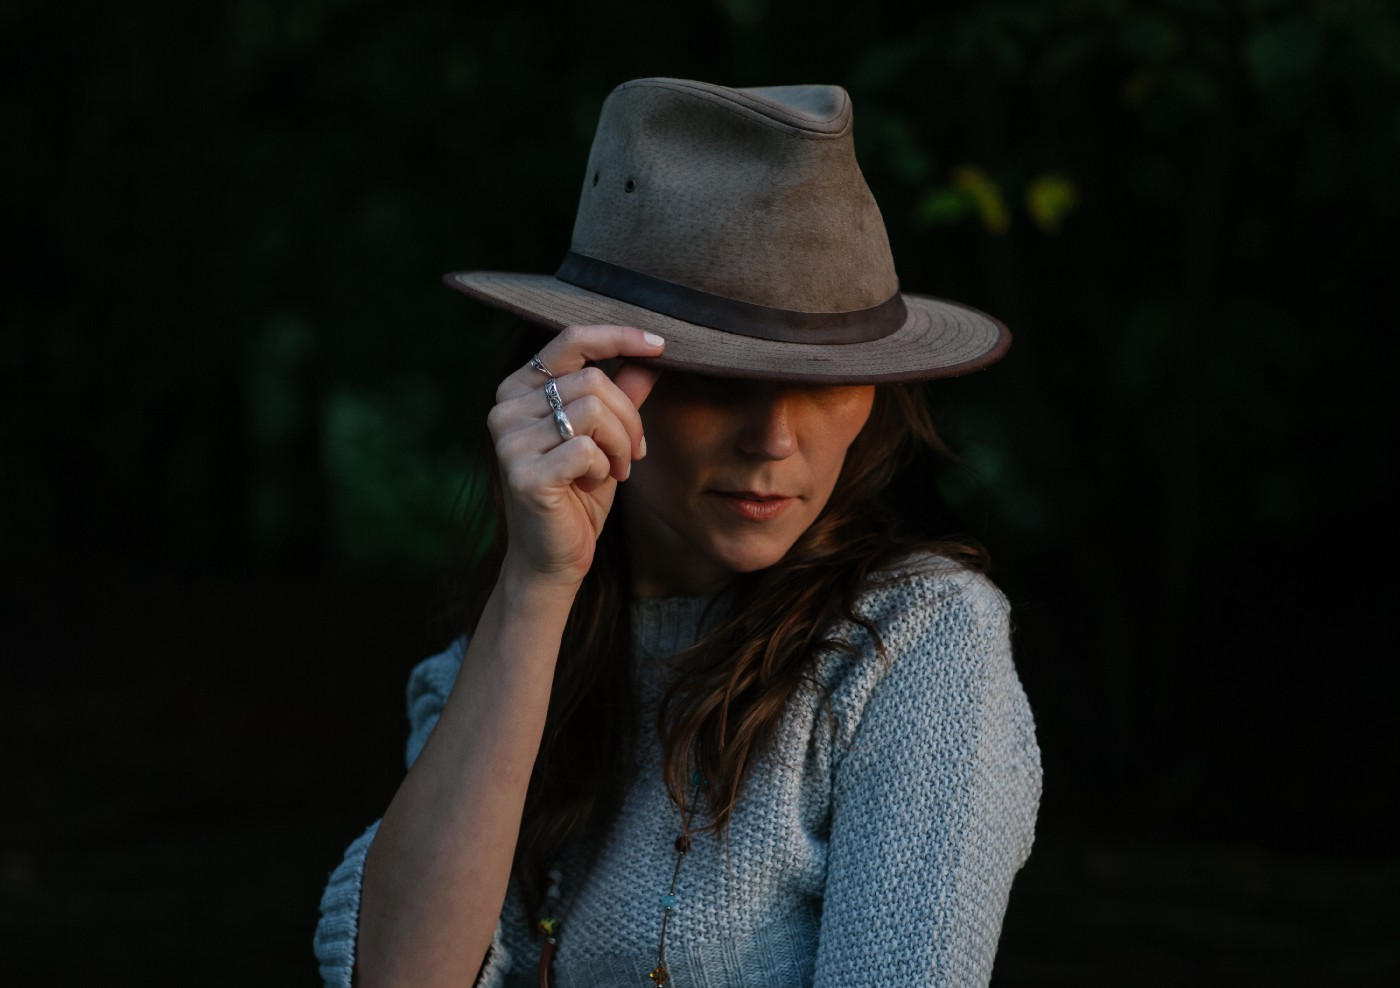 woman looking to the side and touching the brim of her hat